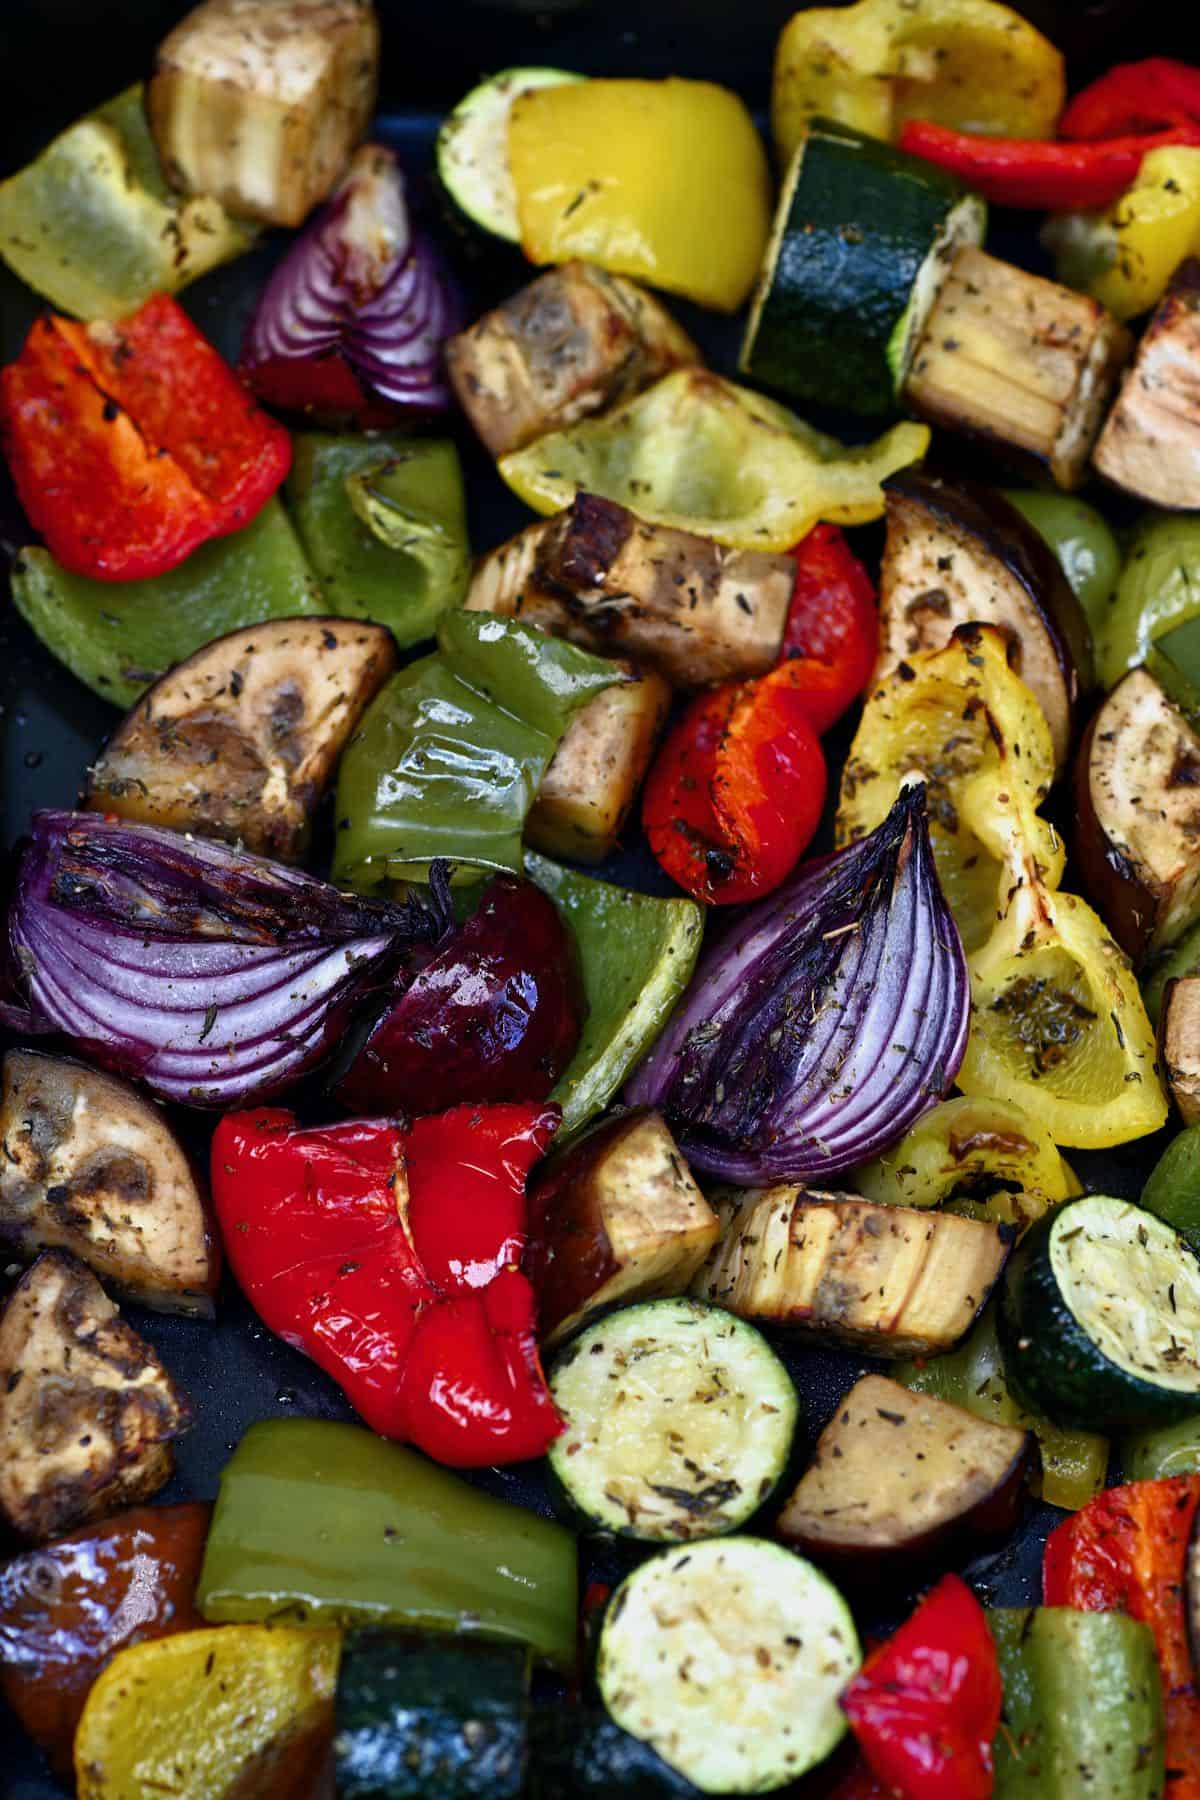 Roasted veggies in a tray